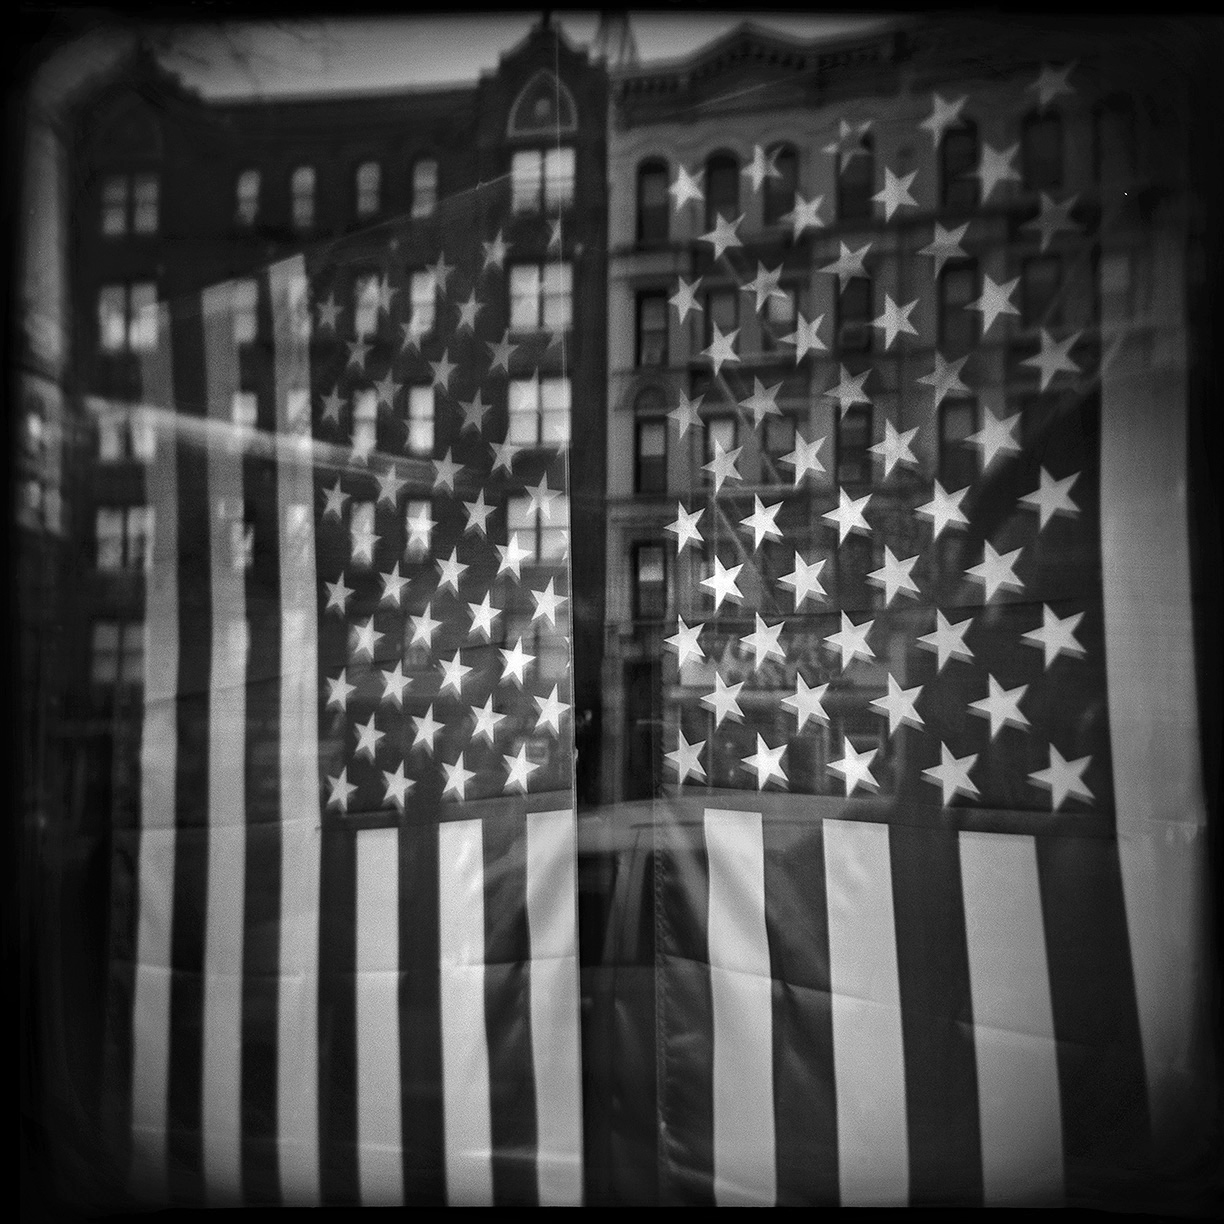 05-ThomasAlleman-OldGlory-WEBSITE-042115